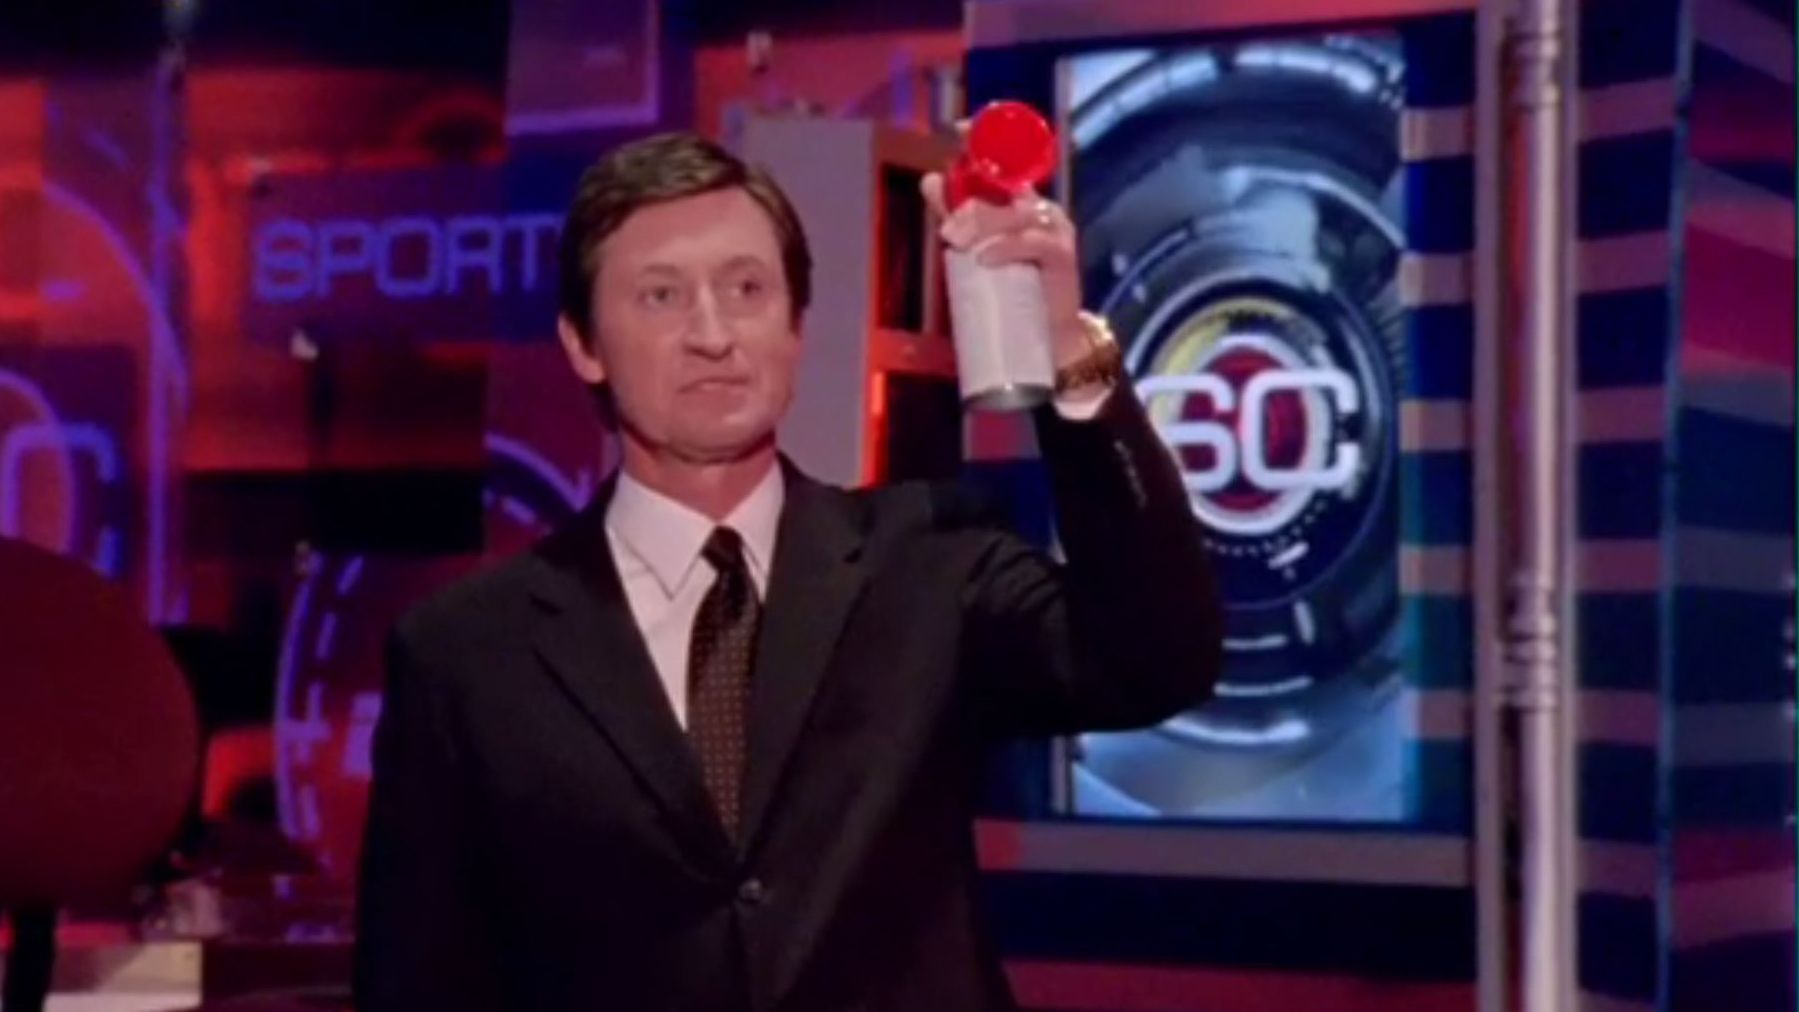 This Is SportsCenter: Wayne Gretzky